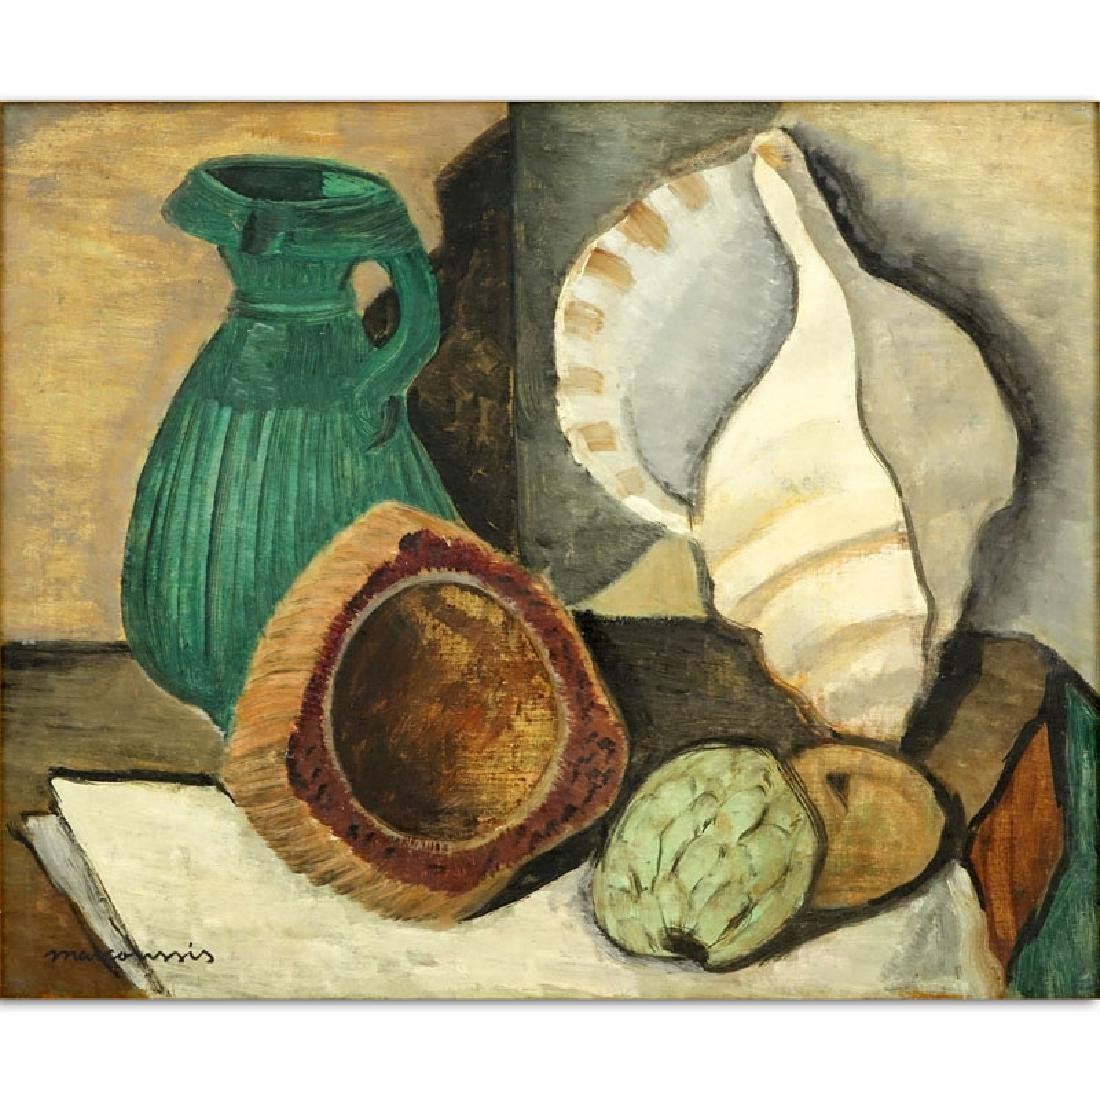 Attributed to: Louis Marcoussis, French (1883-1941) Oil